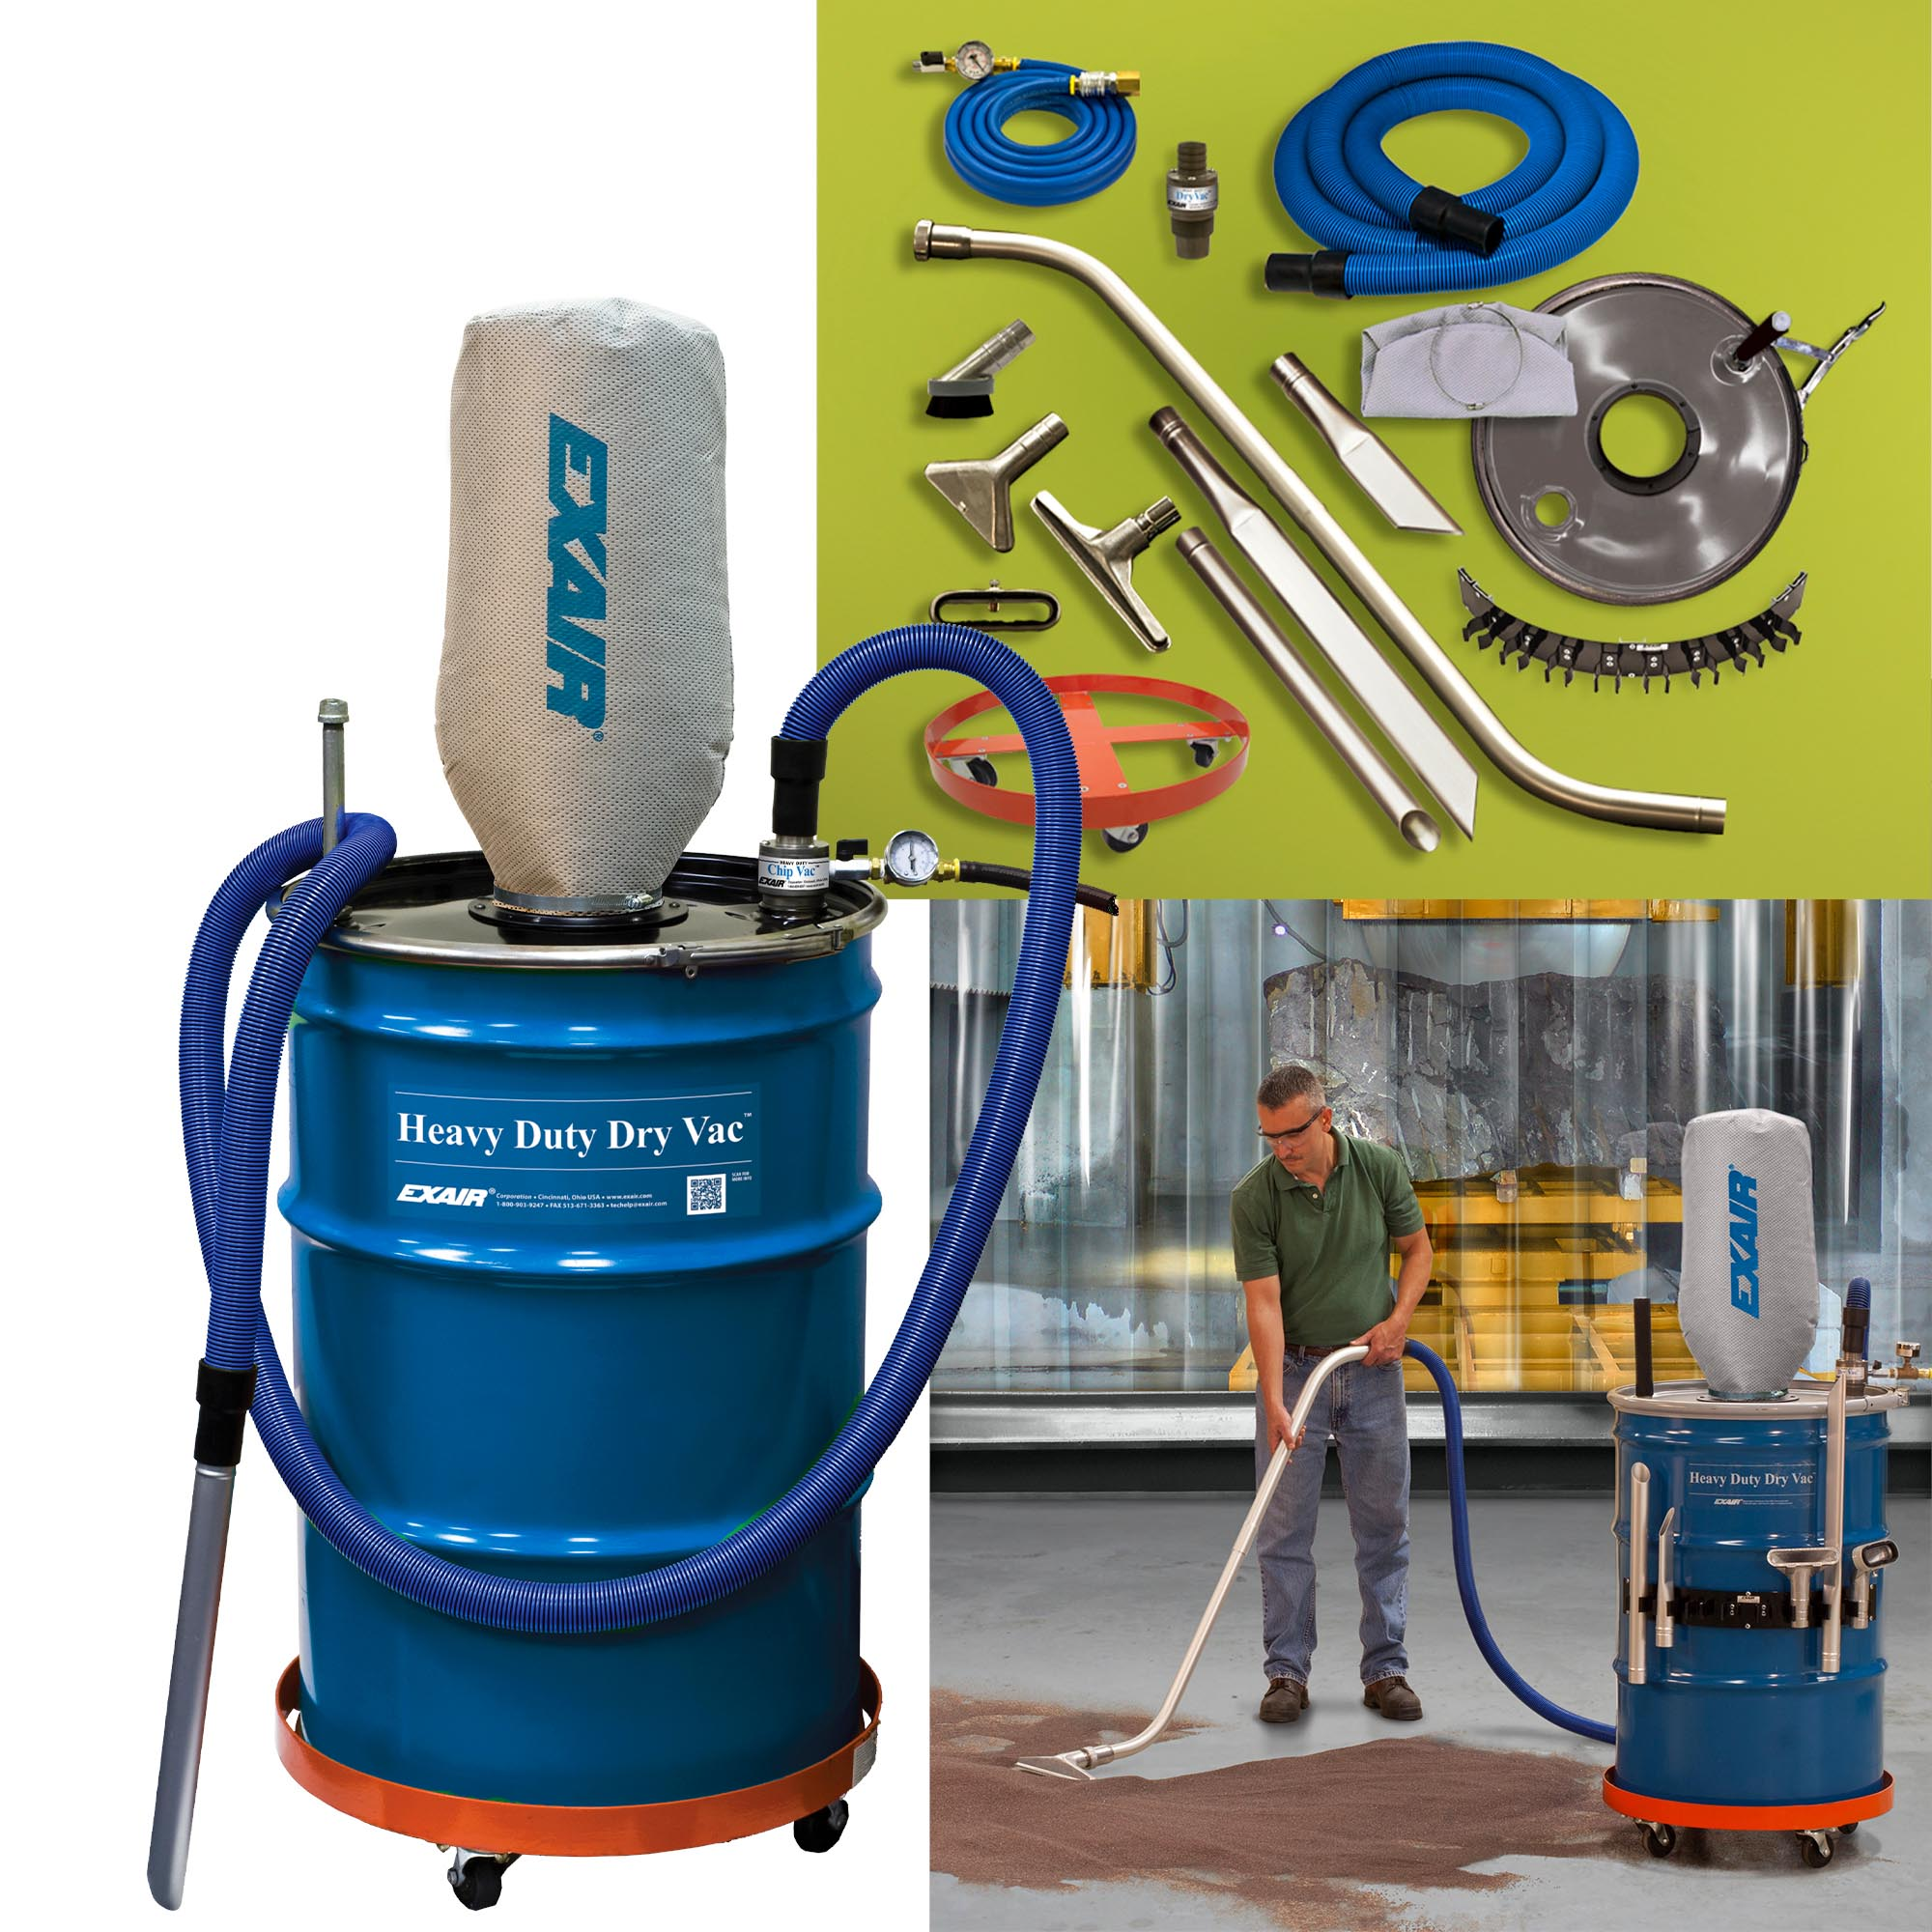 The Model 6197 Heavy Duty Dry Vac System includes 10' (3m) static resistant hose, 20' (6.1m) compressed air hose, filter bag, aluminum chip wand, shutoff valve and gauge.